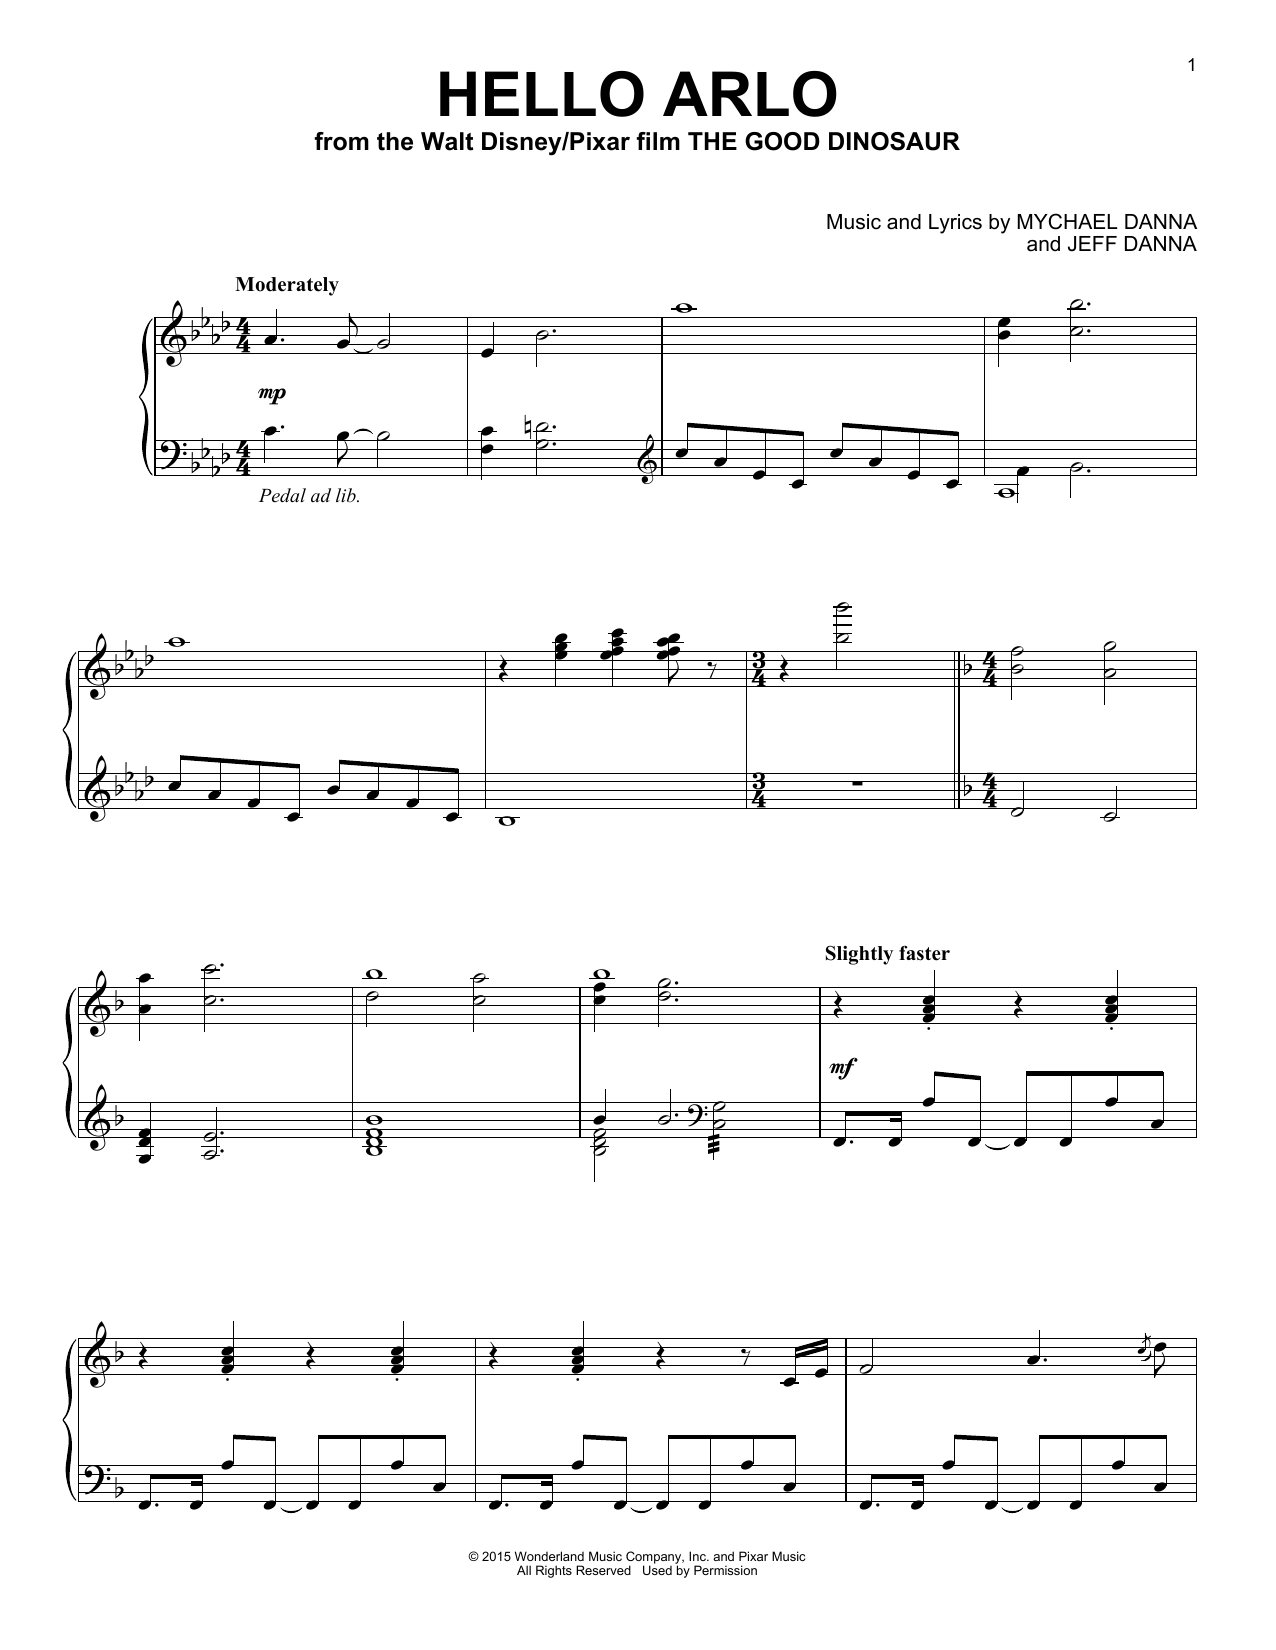 Mychael & Jeff Danna Hello Arlo sheet music notes and chords